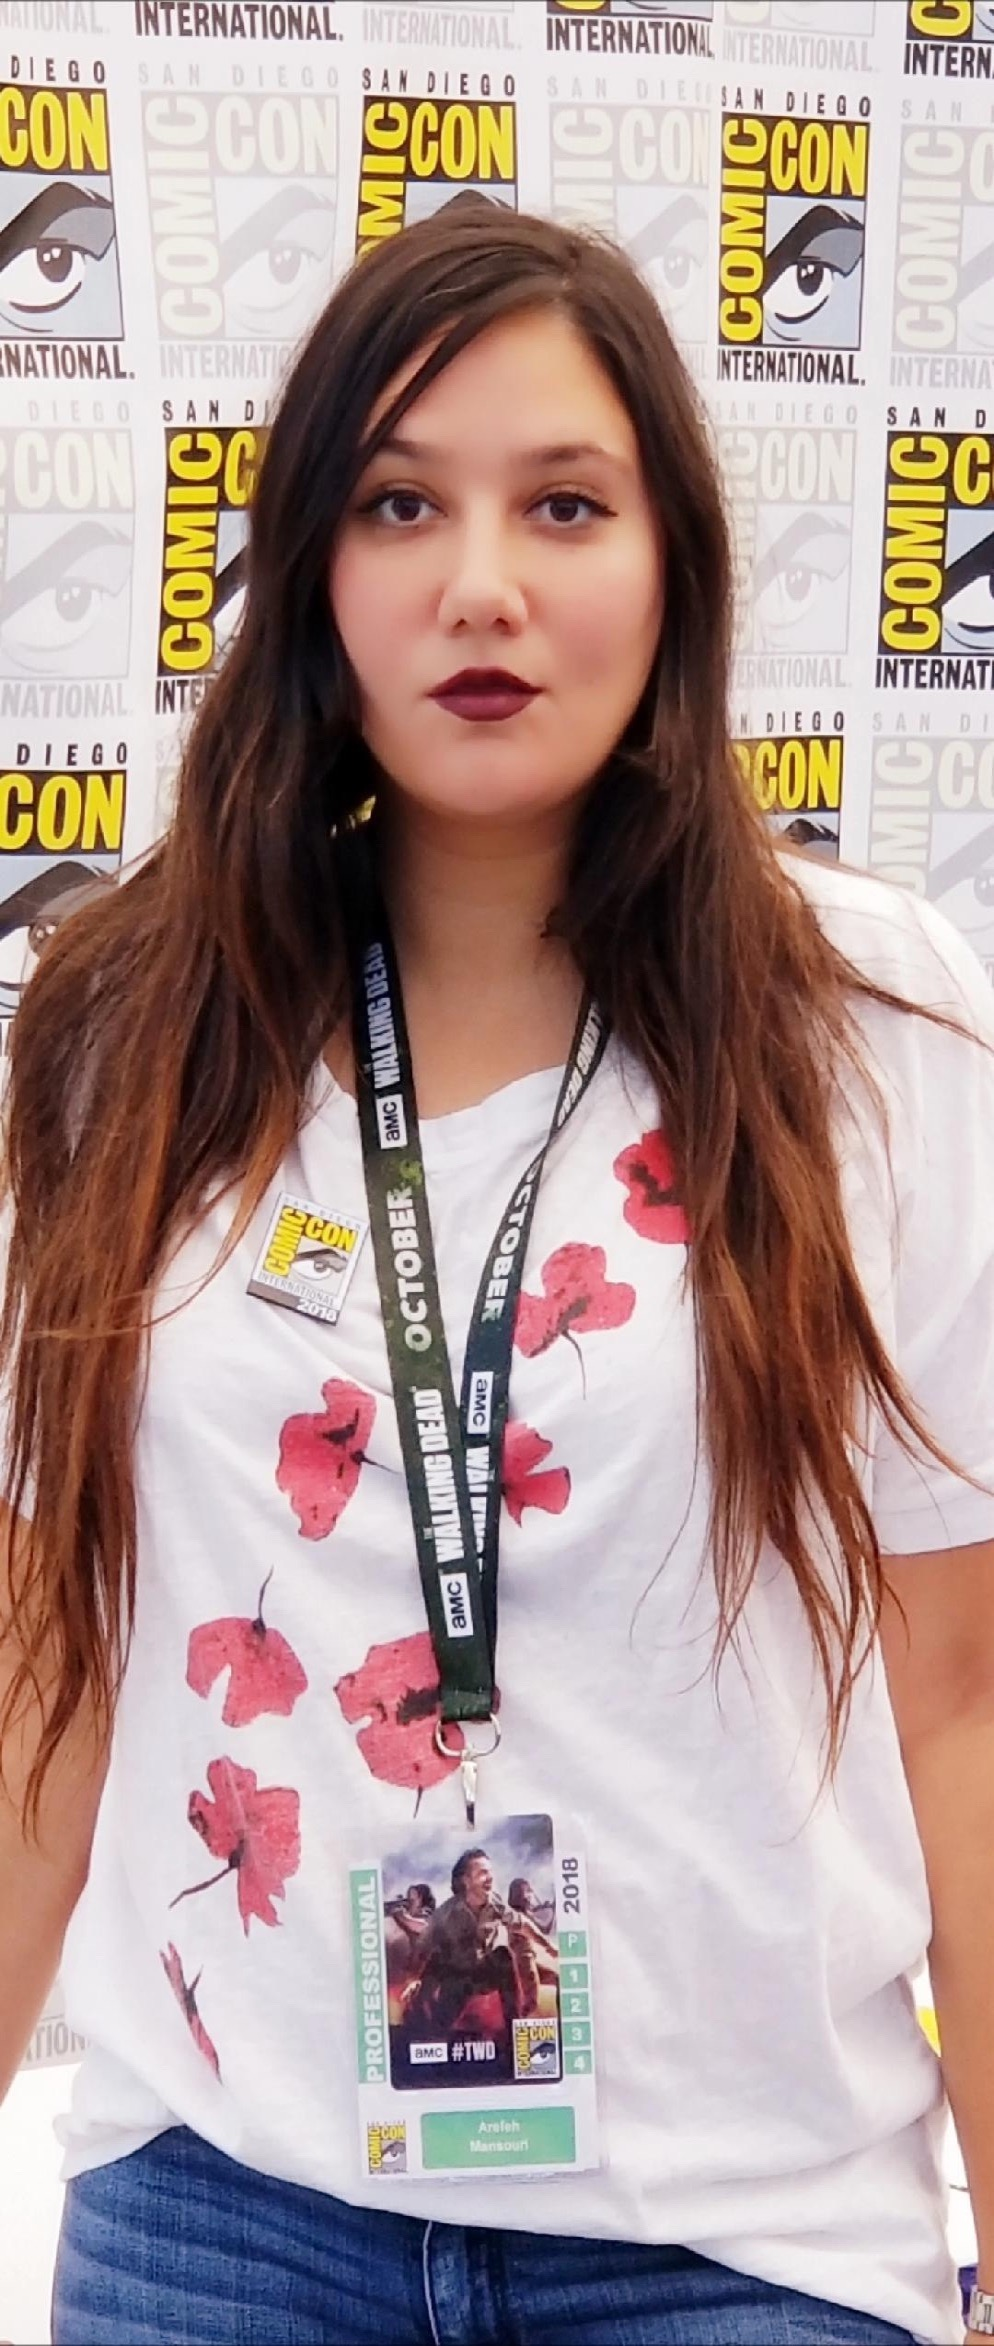 Costume designer Arefeh Mansouri at the Comic-Con International in San Diego